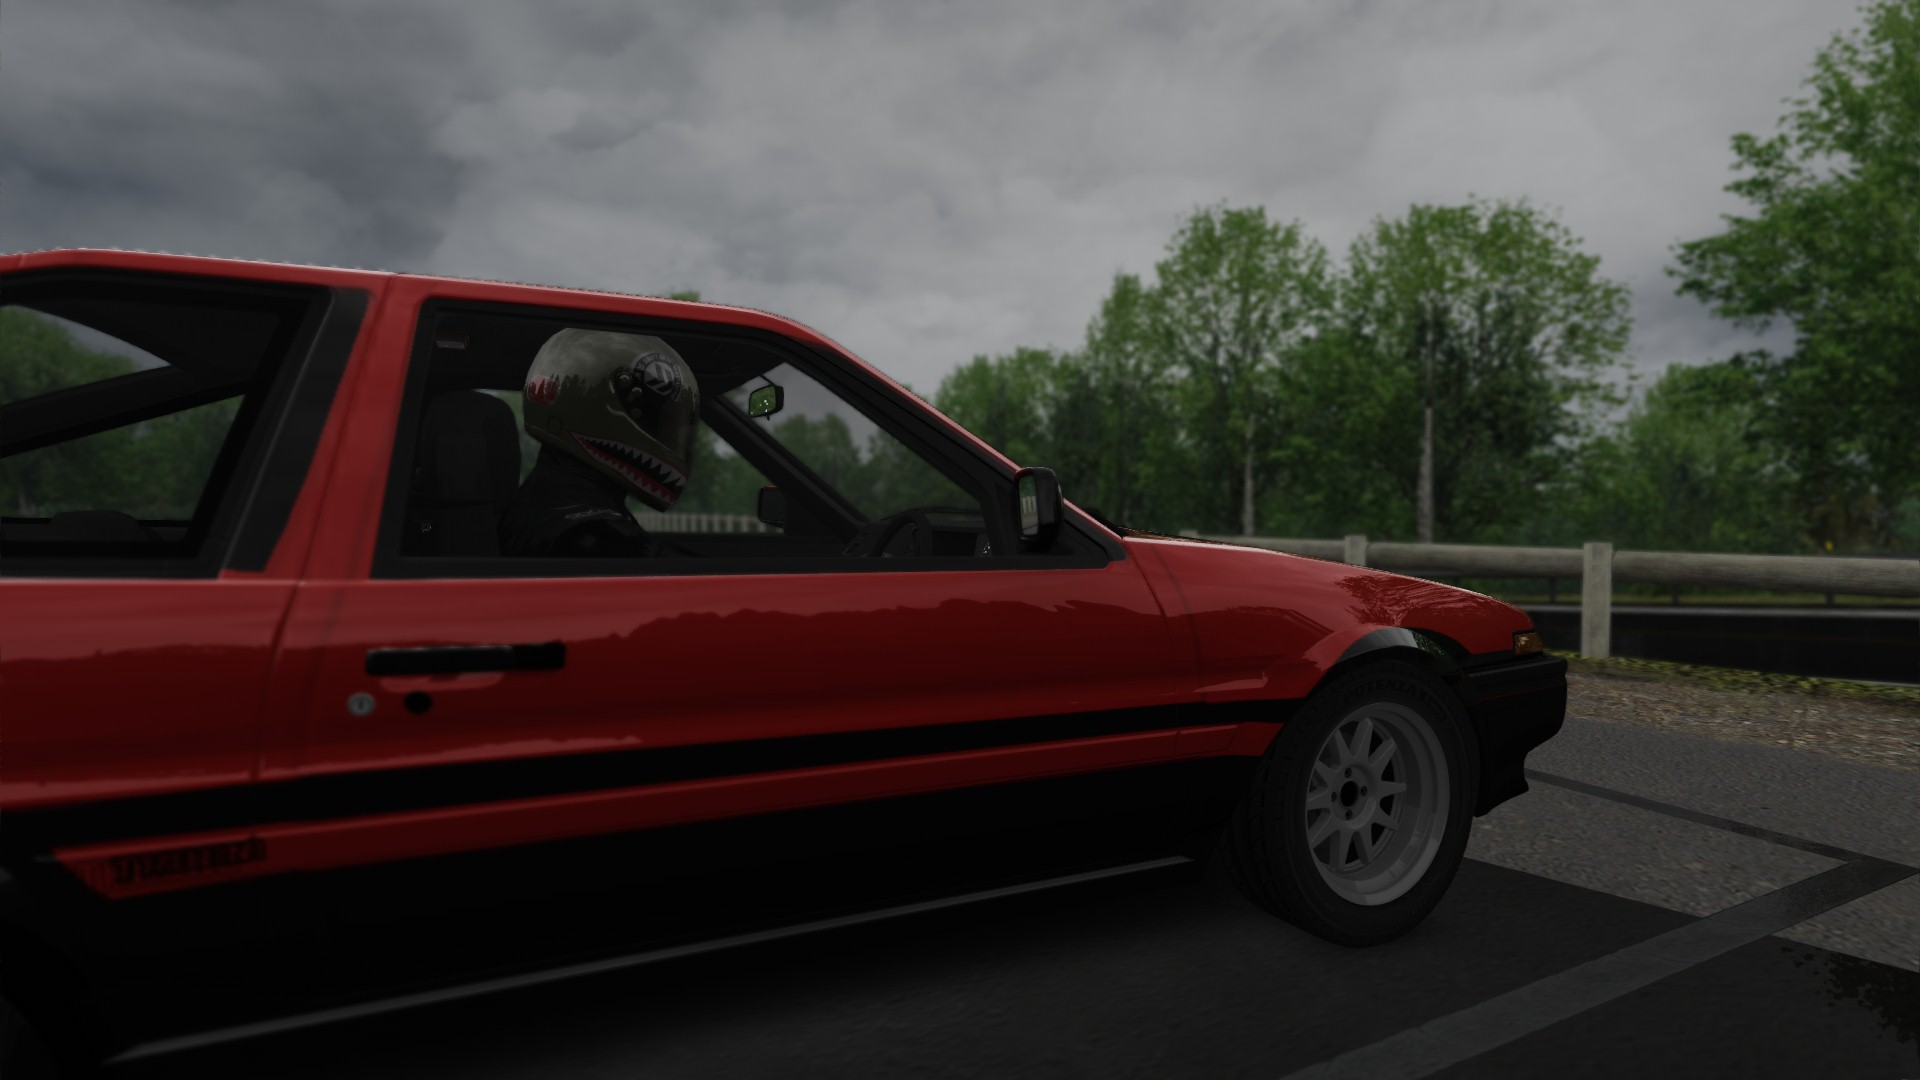 Screenshot_ks_toyota_ae86_tuned_hks_rain_sost_myogi_12-3-118-13-48-15.jpg